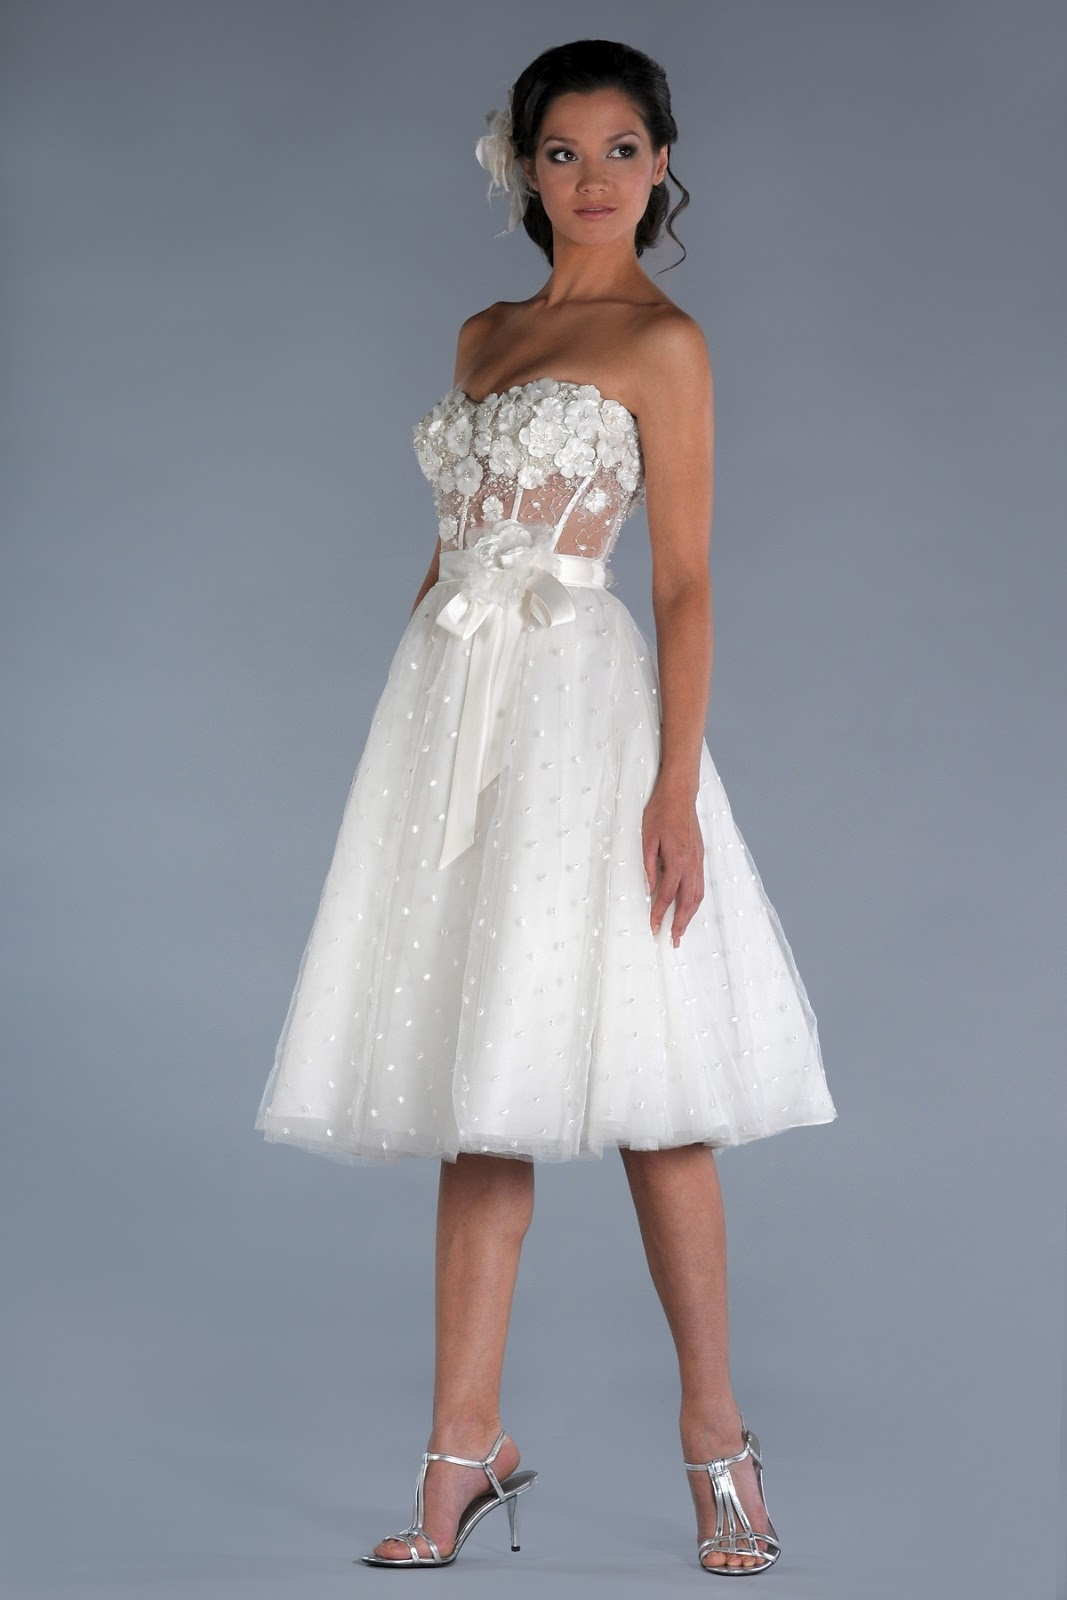 Dressybridal 5 cute short wedding dresses for summer for Short wedding dresses uk